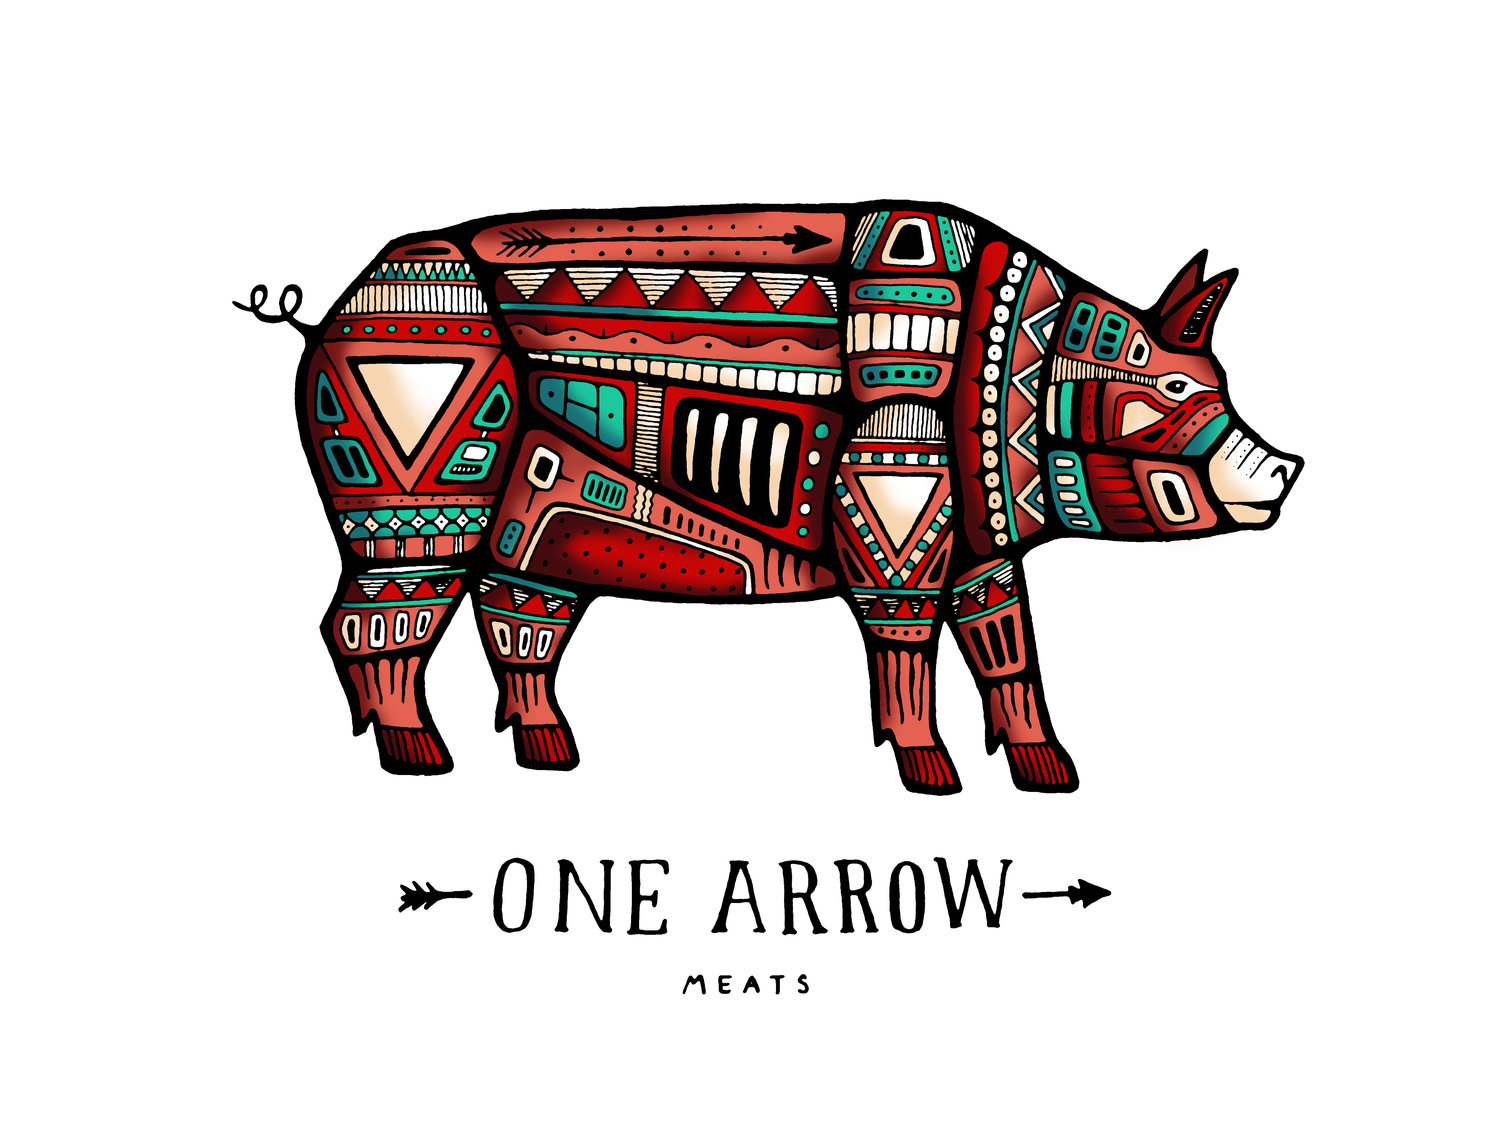 ONE ARROW MEATS